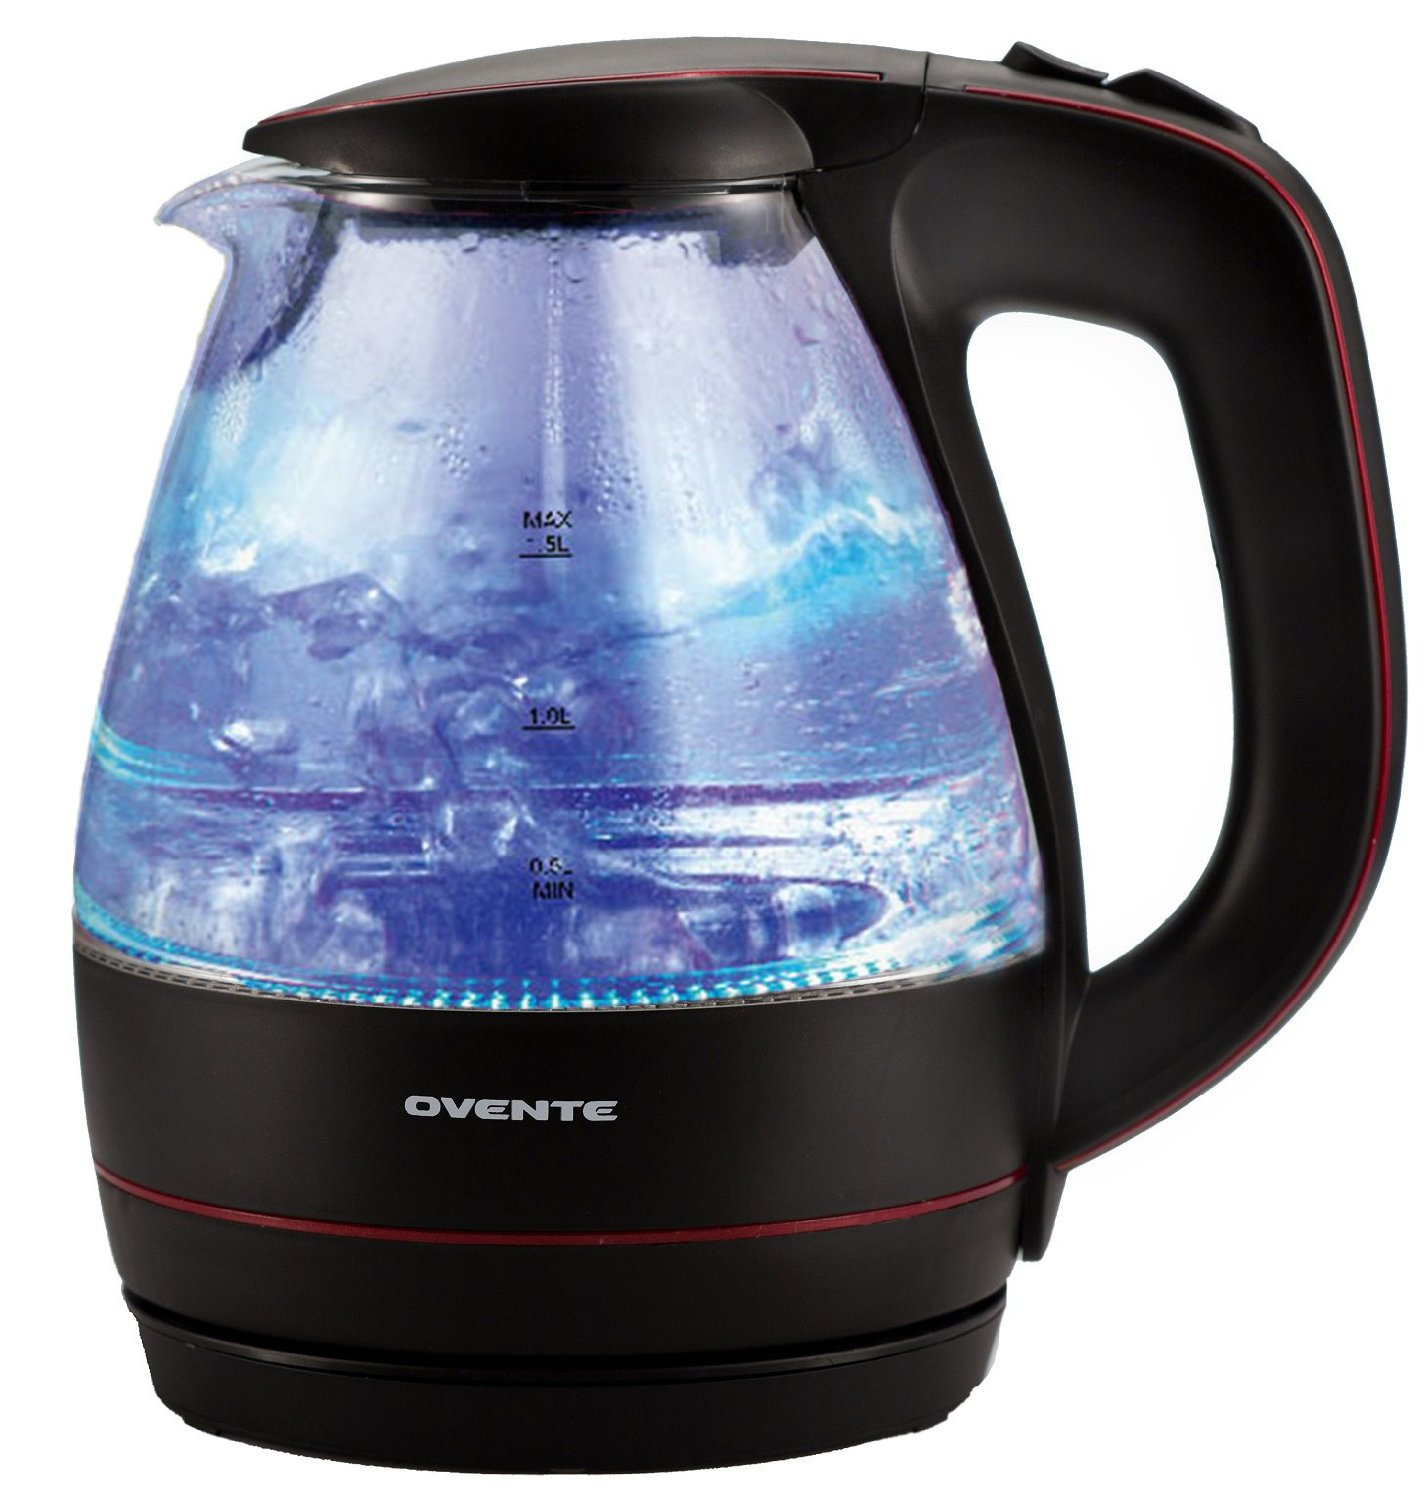 Ovente Kg83b Glass Electric Kettle Reviews And Price